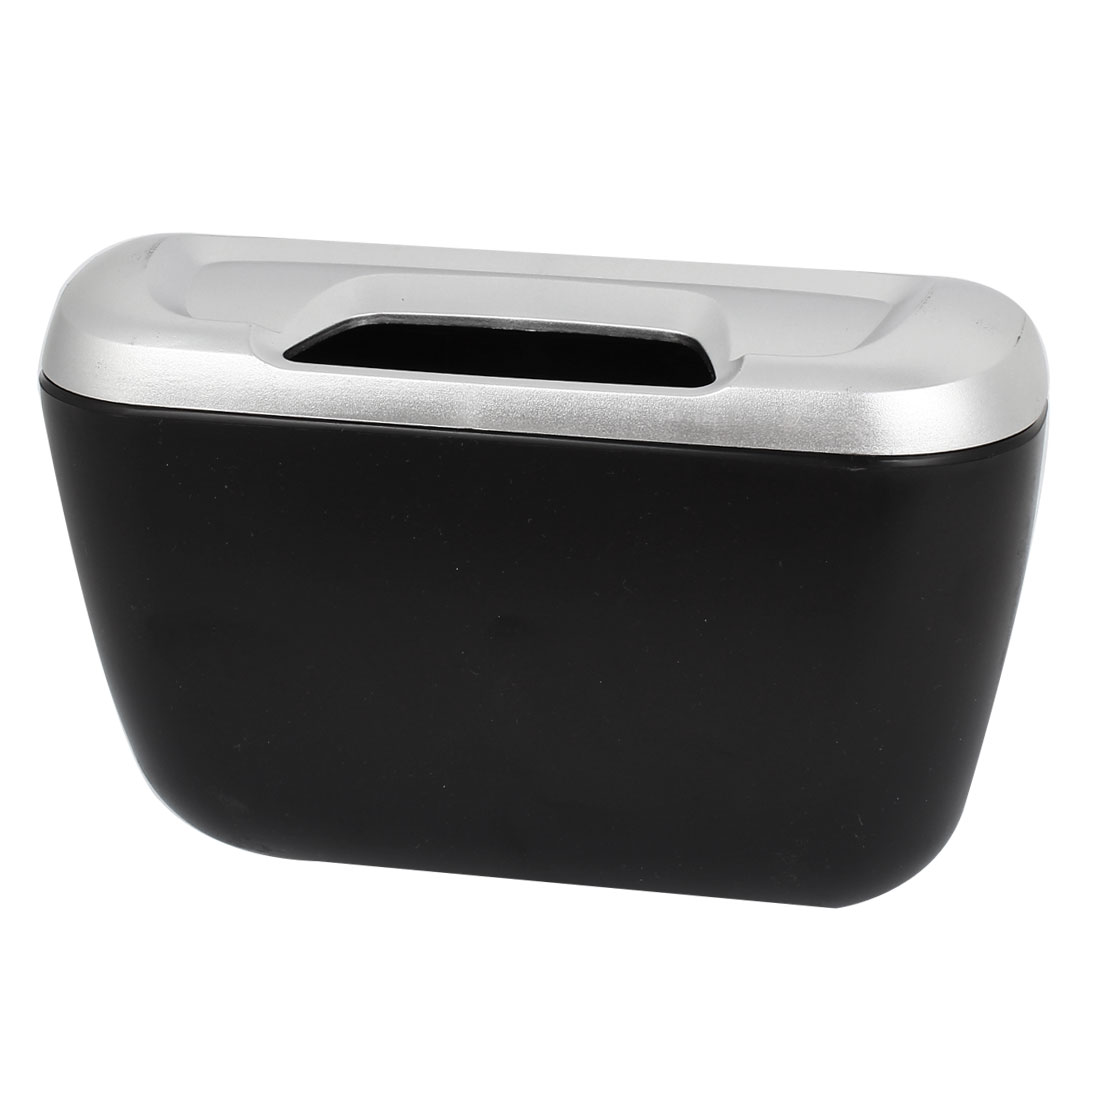 Vehicle Car Sliver Tone Black Cover Trash Bin Garbage Box